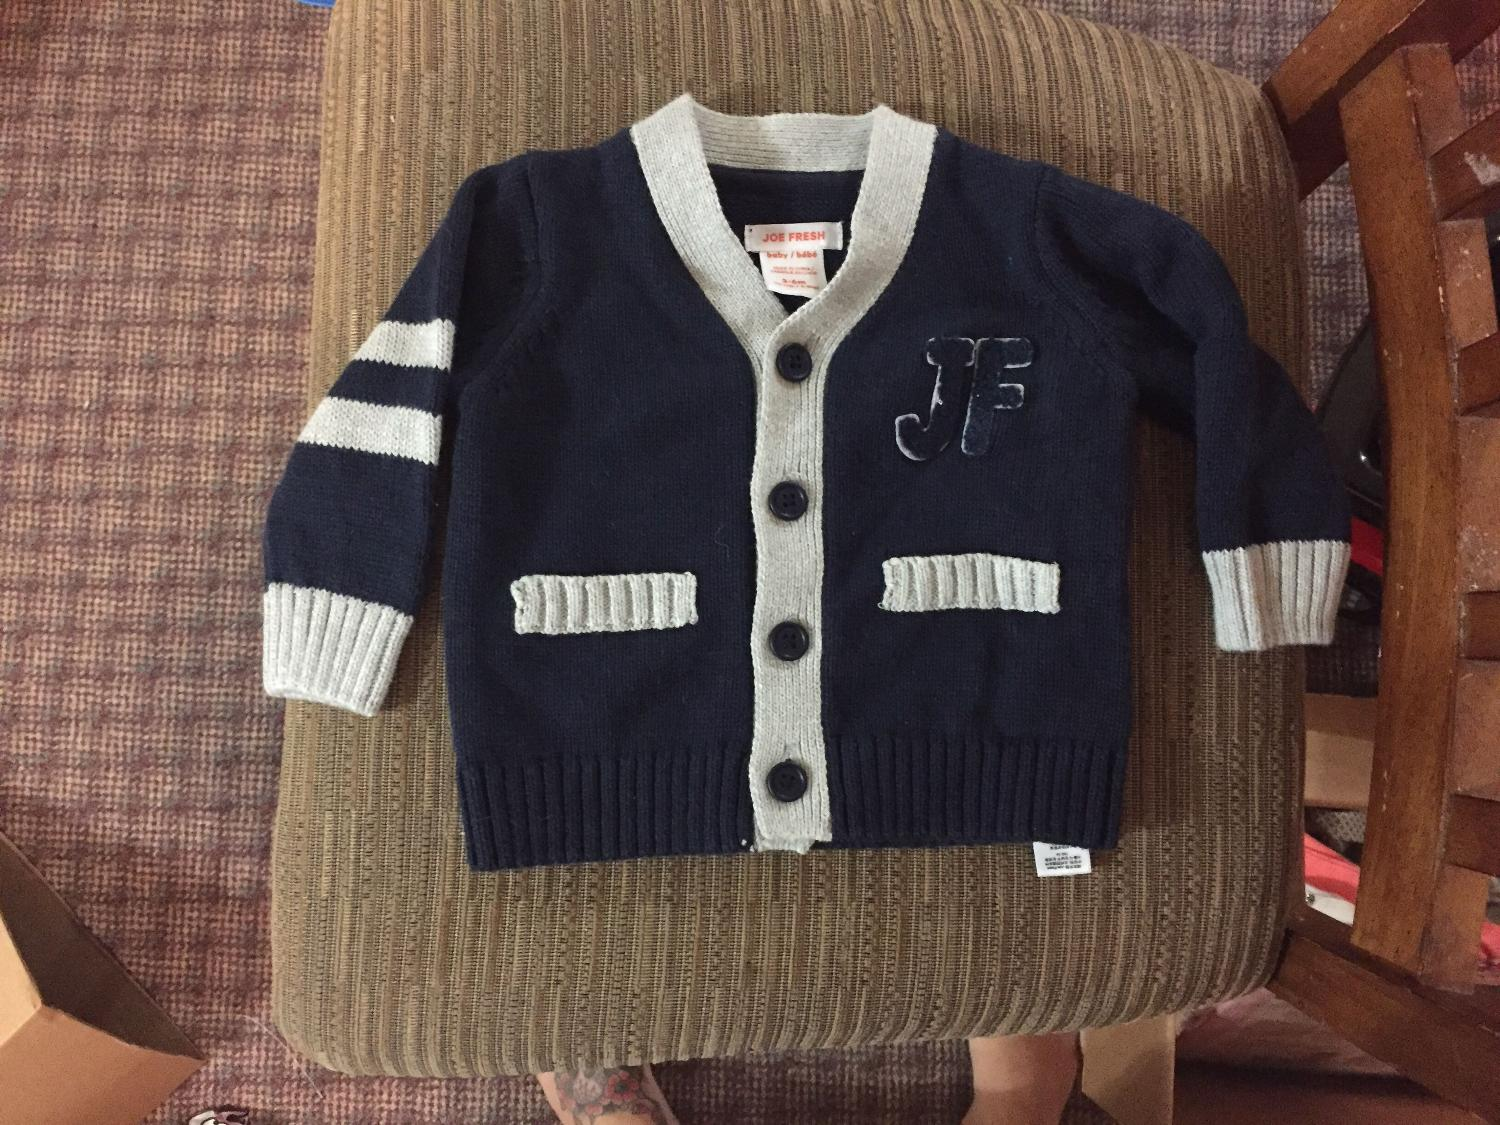 2ce1bb41a33a Best Joe Fresh Sweater for sale in Saugeen Shores, Ontario for 2019